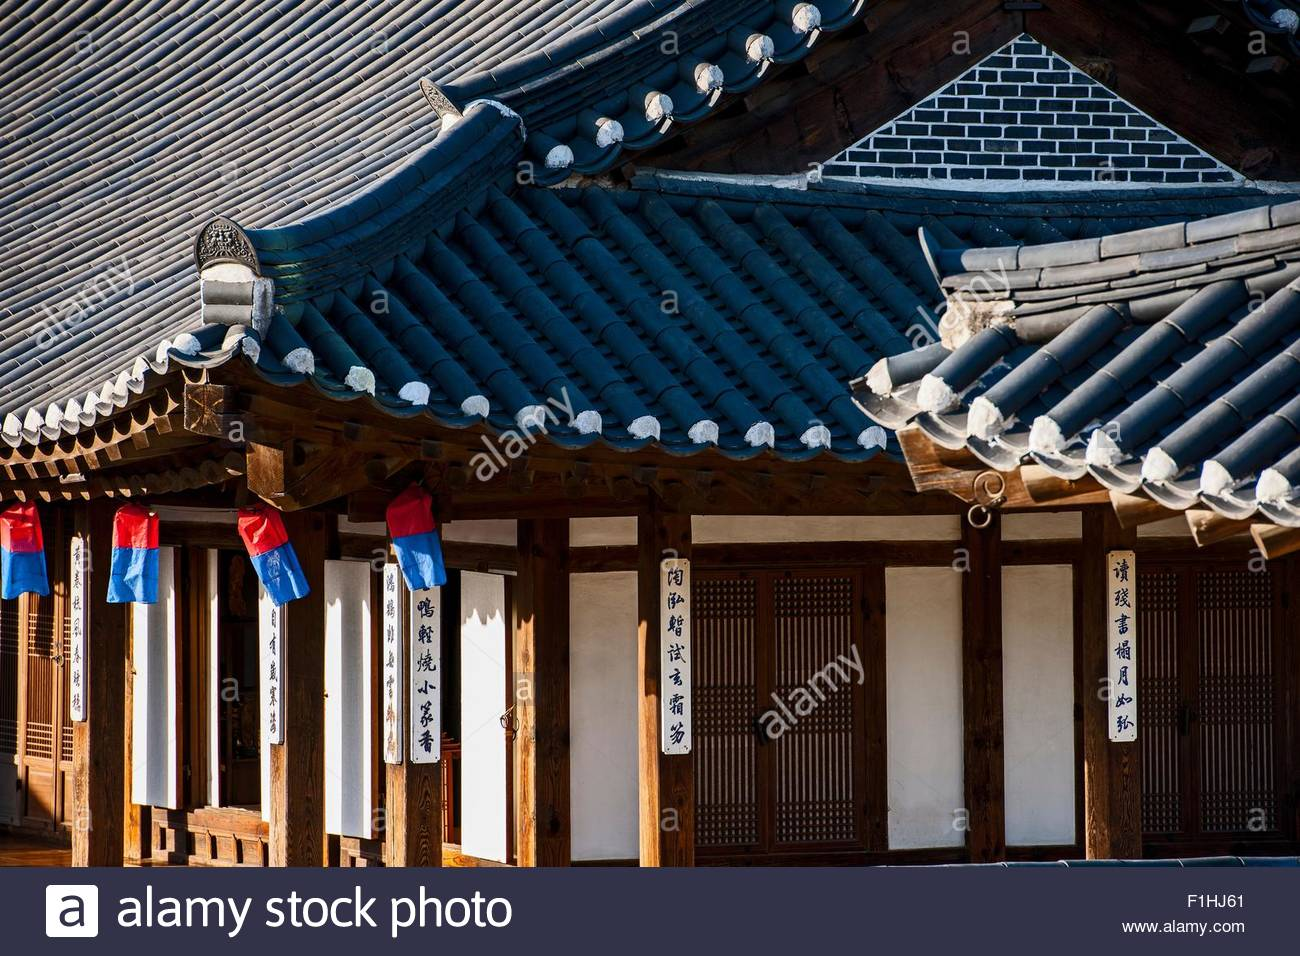 Detail of traditional houses at the Hangok open air museum in Seoul, South Korea - Stock Image